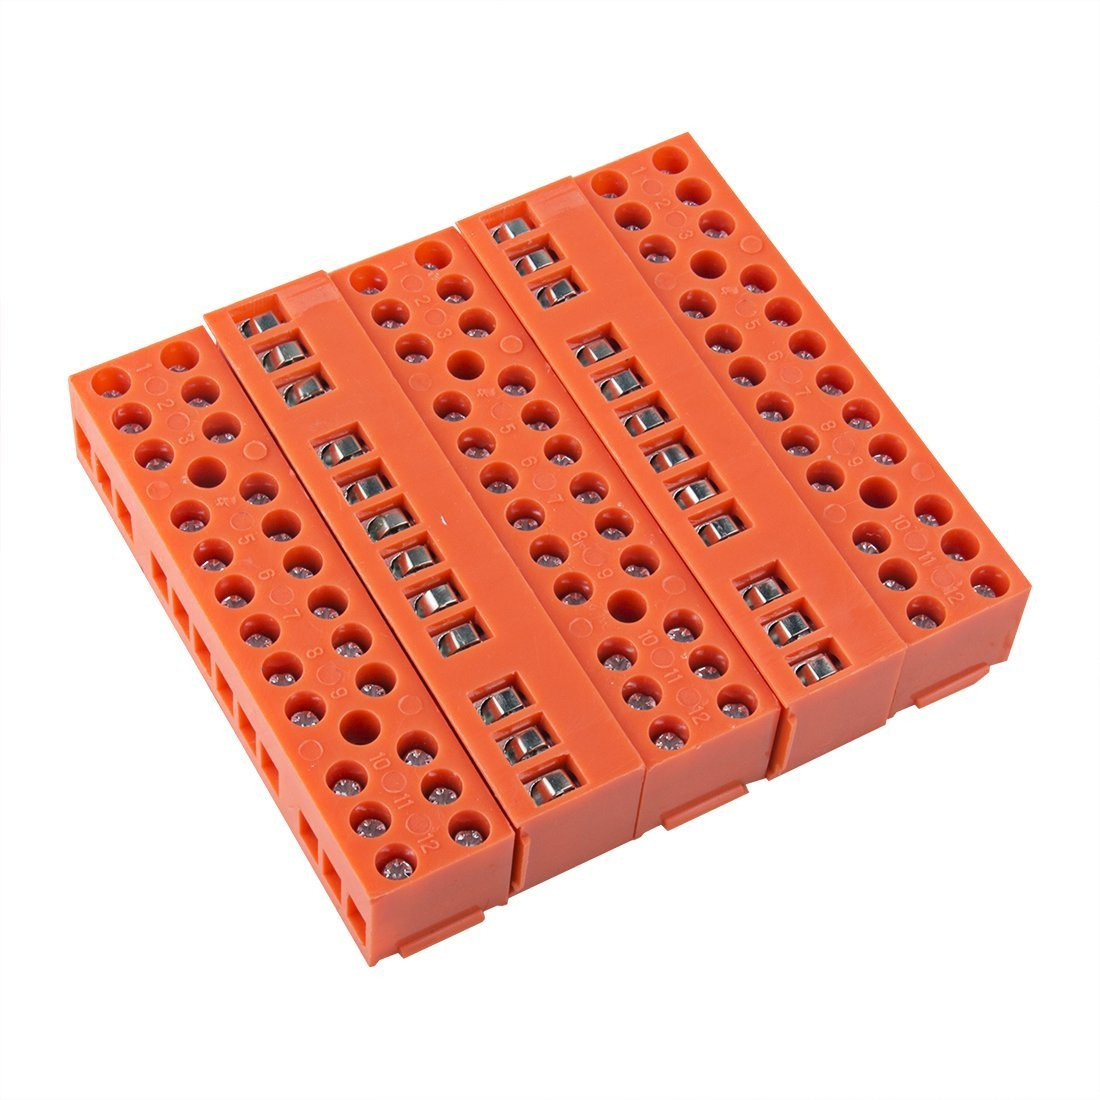 uxcell 5 Pcs 600V 36A Dual Row 12 Positions Screw Terminal Electric Barrier Strip Block